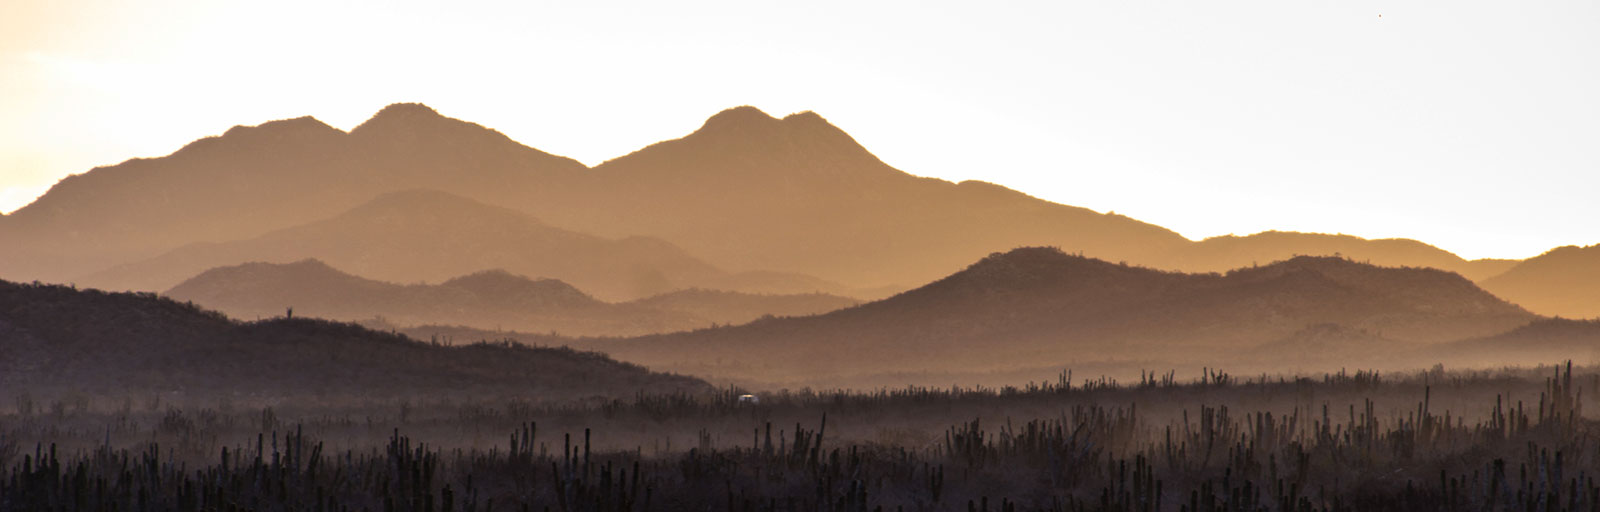 Yoga & Wellness Retreats in Mexico: Sunrise Glow in the Mountains